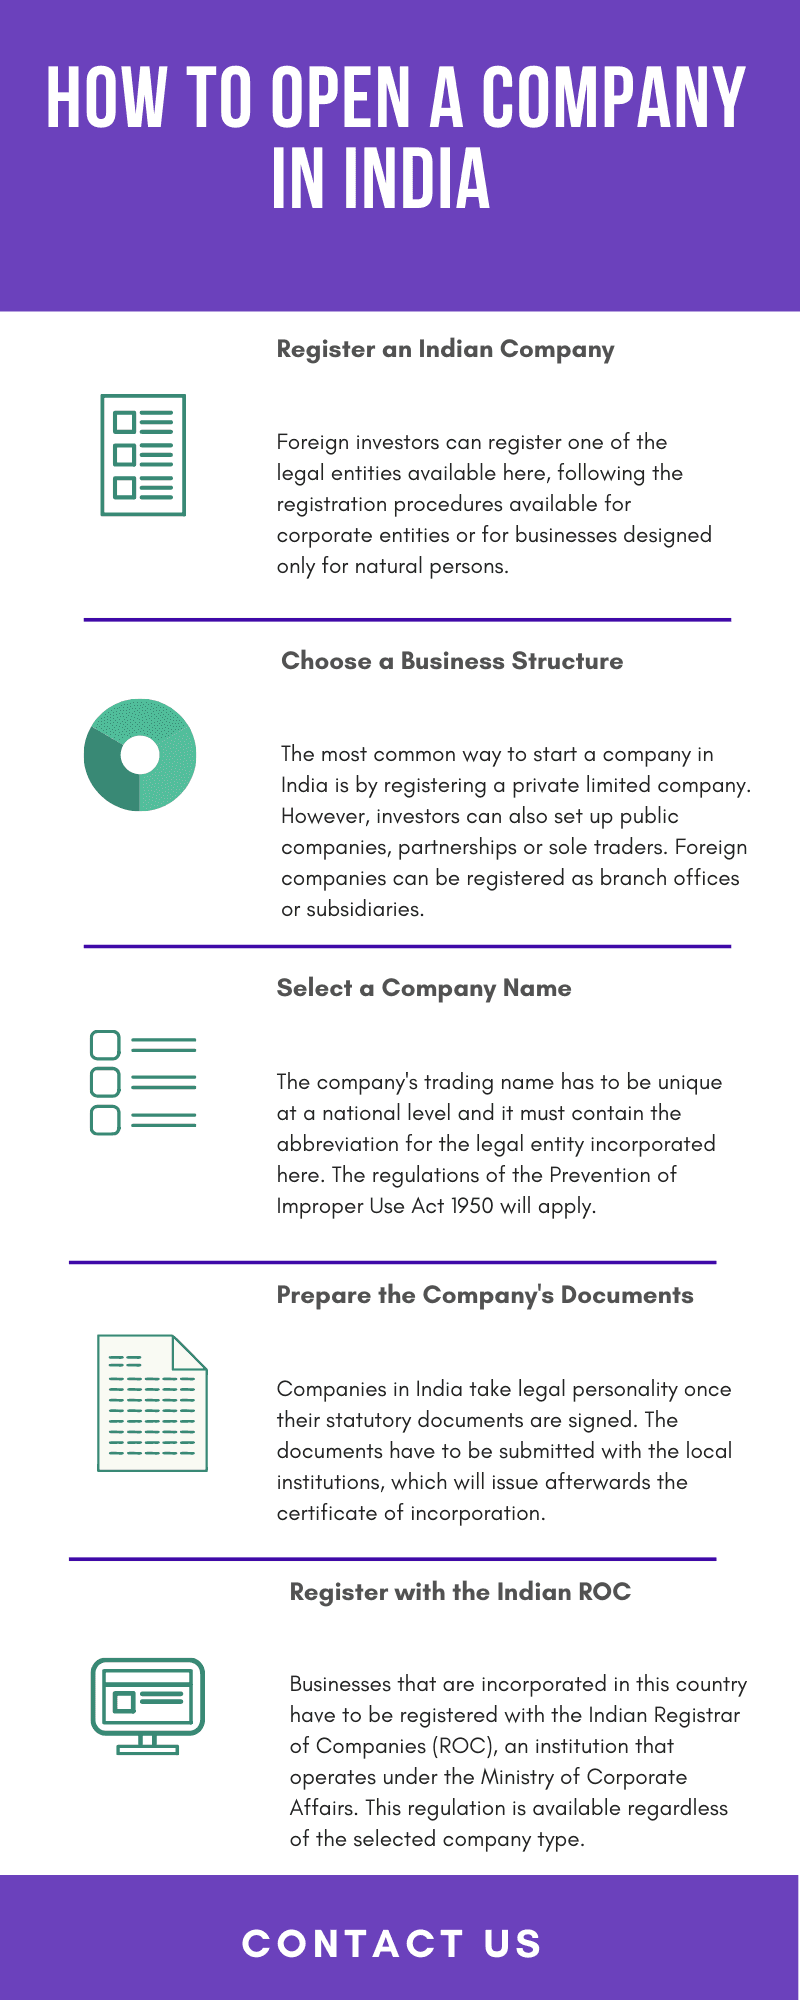 How to Open a Company in India